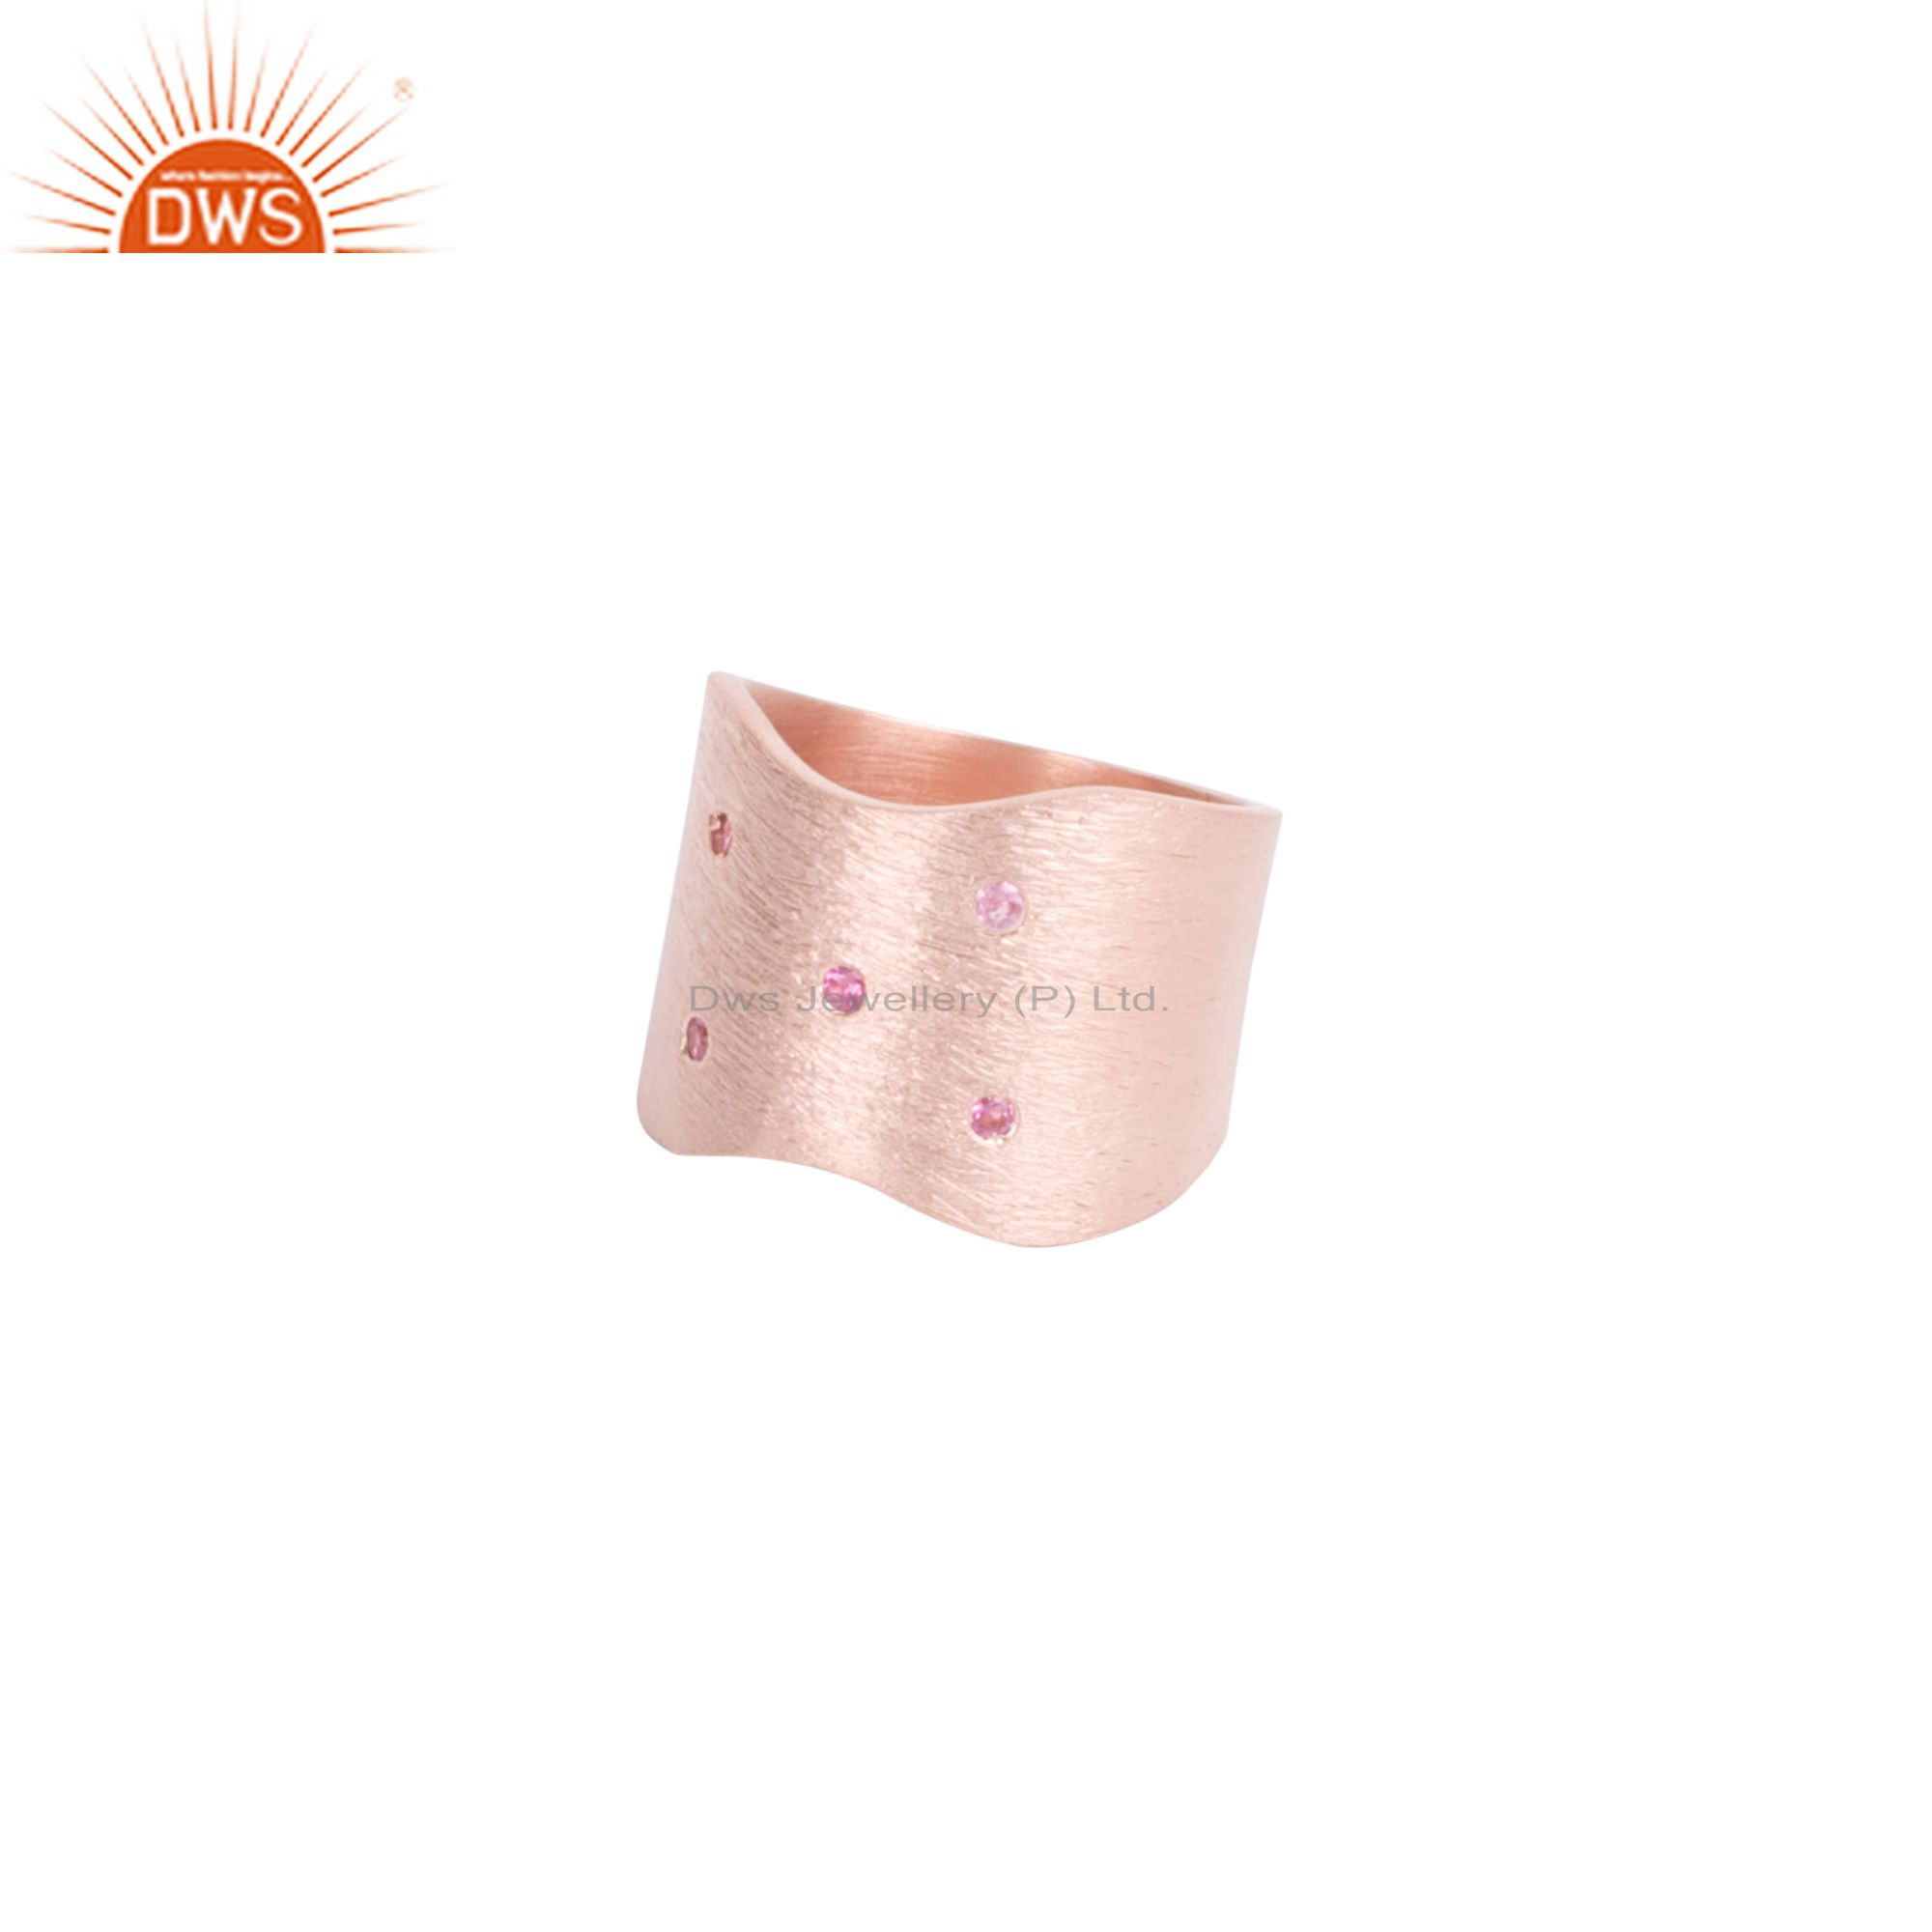 Brushed 18K Rose Gold Plated Sterling Silver Pink Tourmaline Band Ring